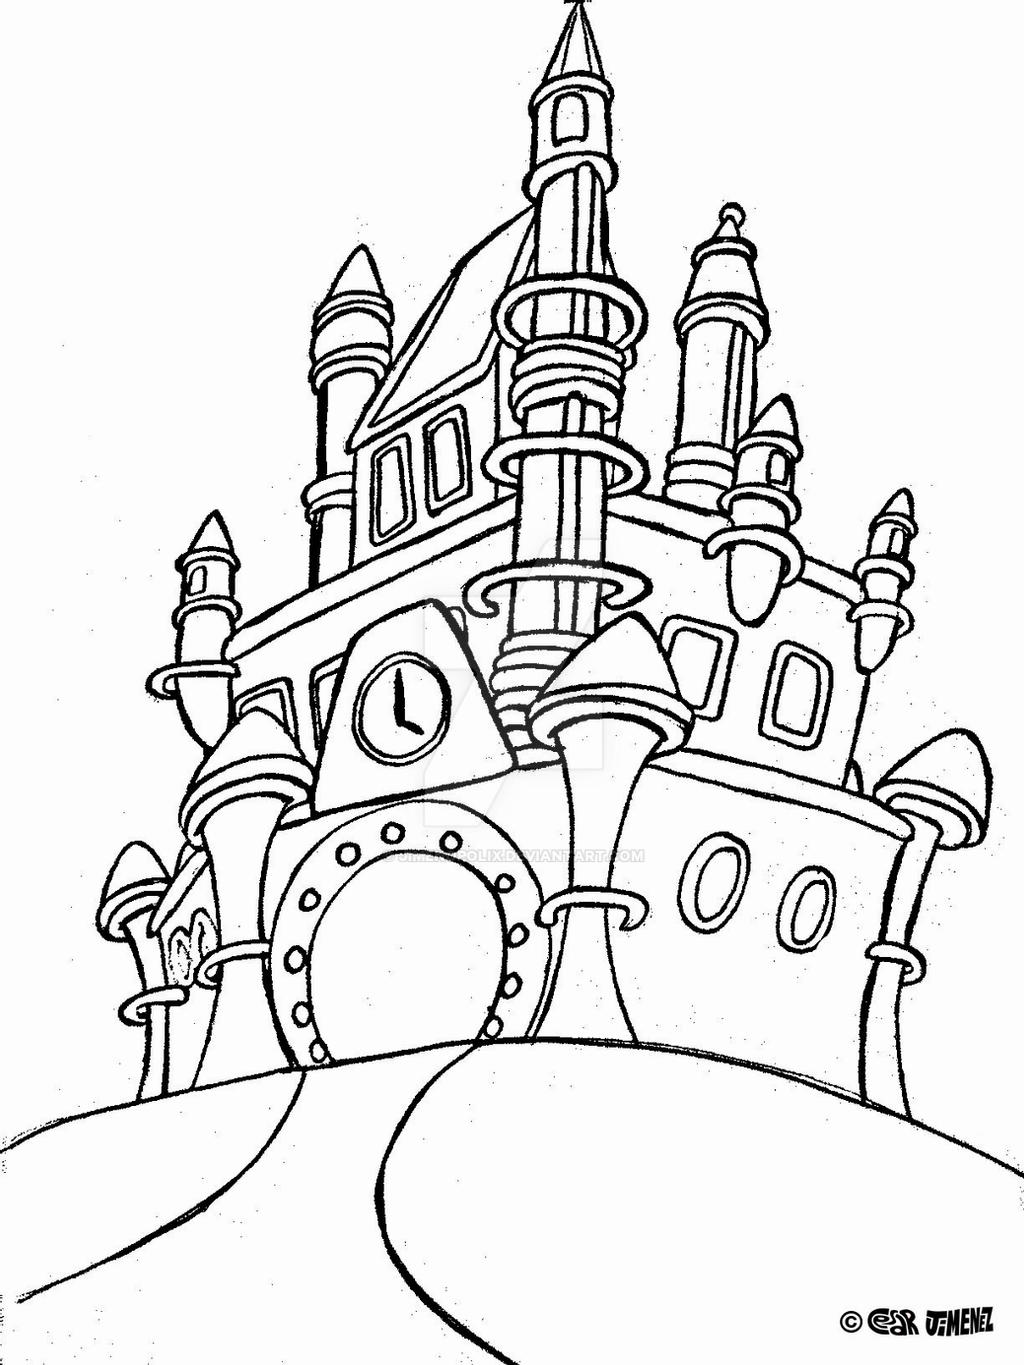 disney castle coloring page jimenopolix disney world castle by jimenopolix on deviantart castle coloring page disney